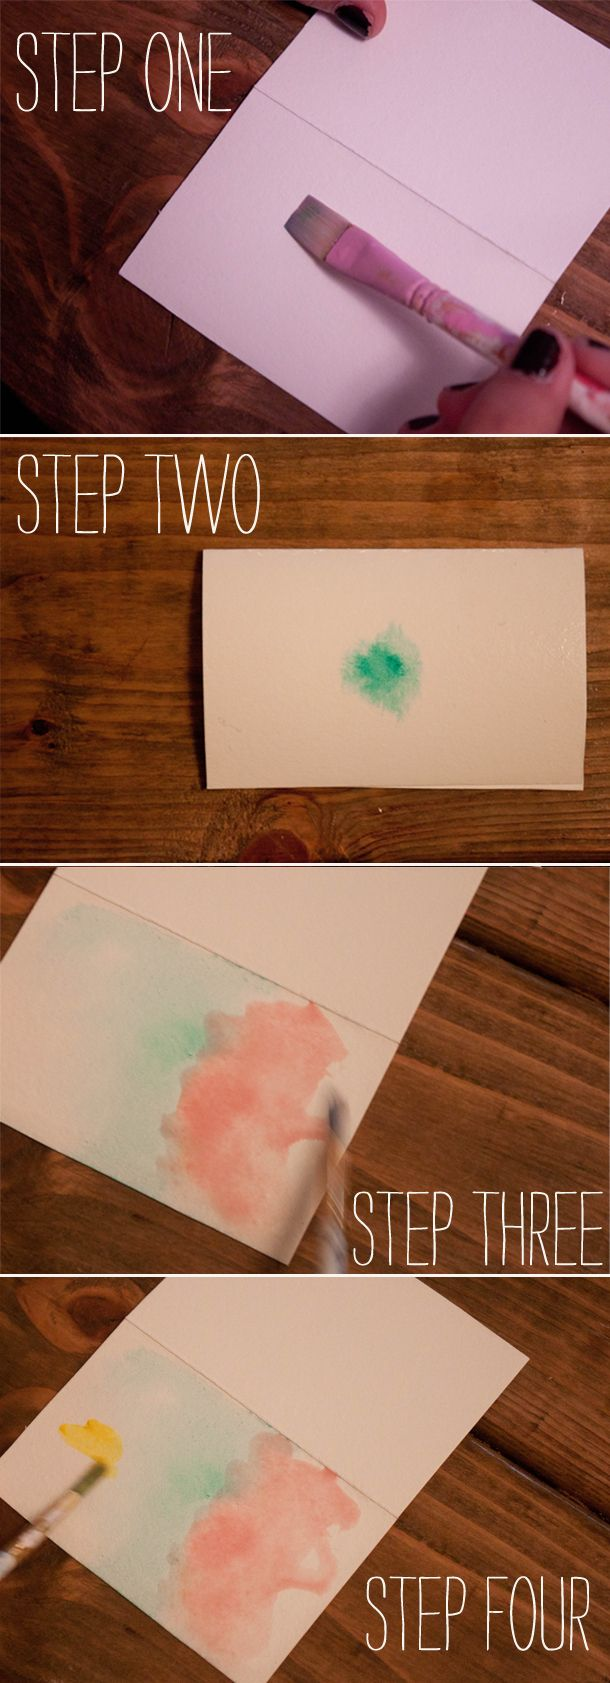 DIY watercolor cards - loving this easy technique lately